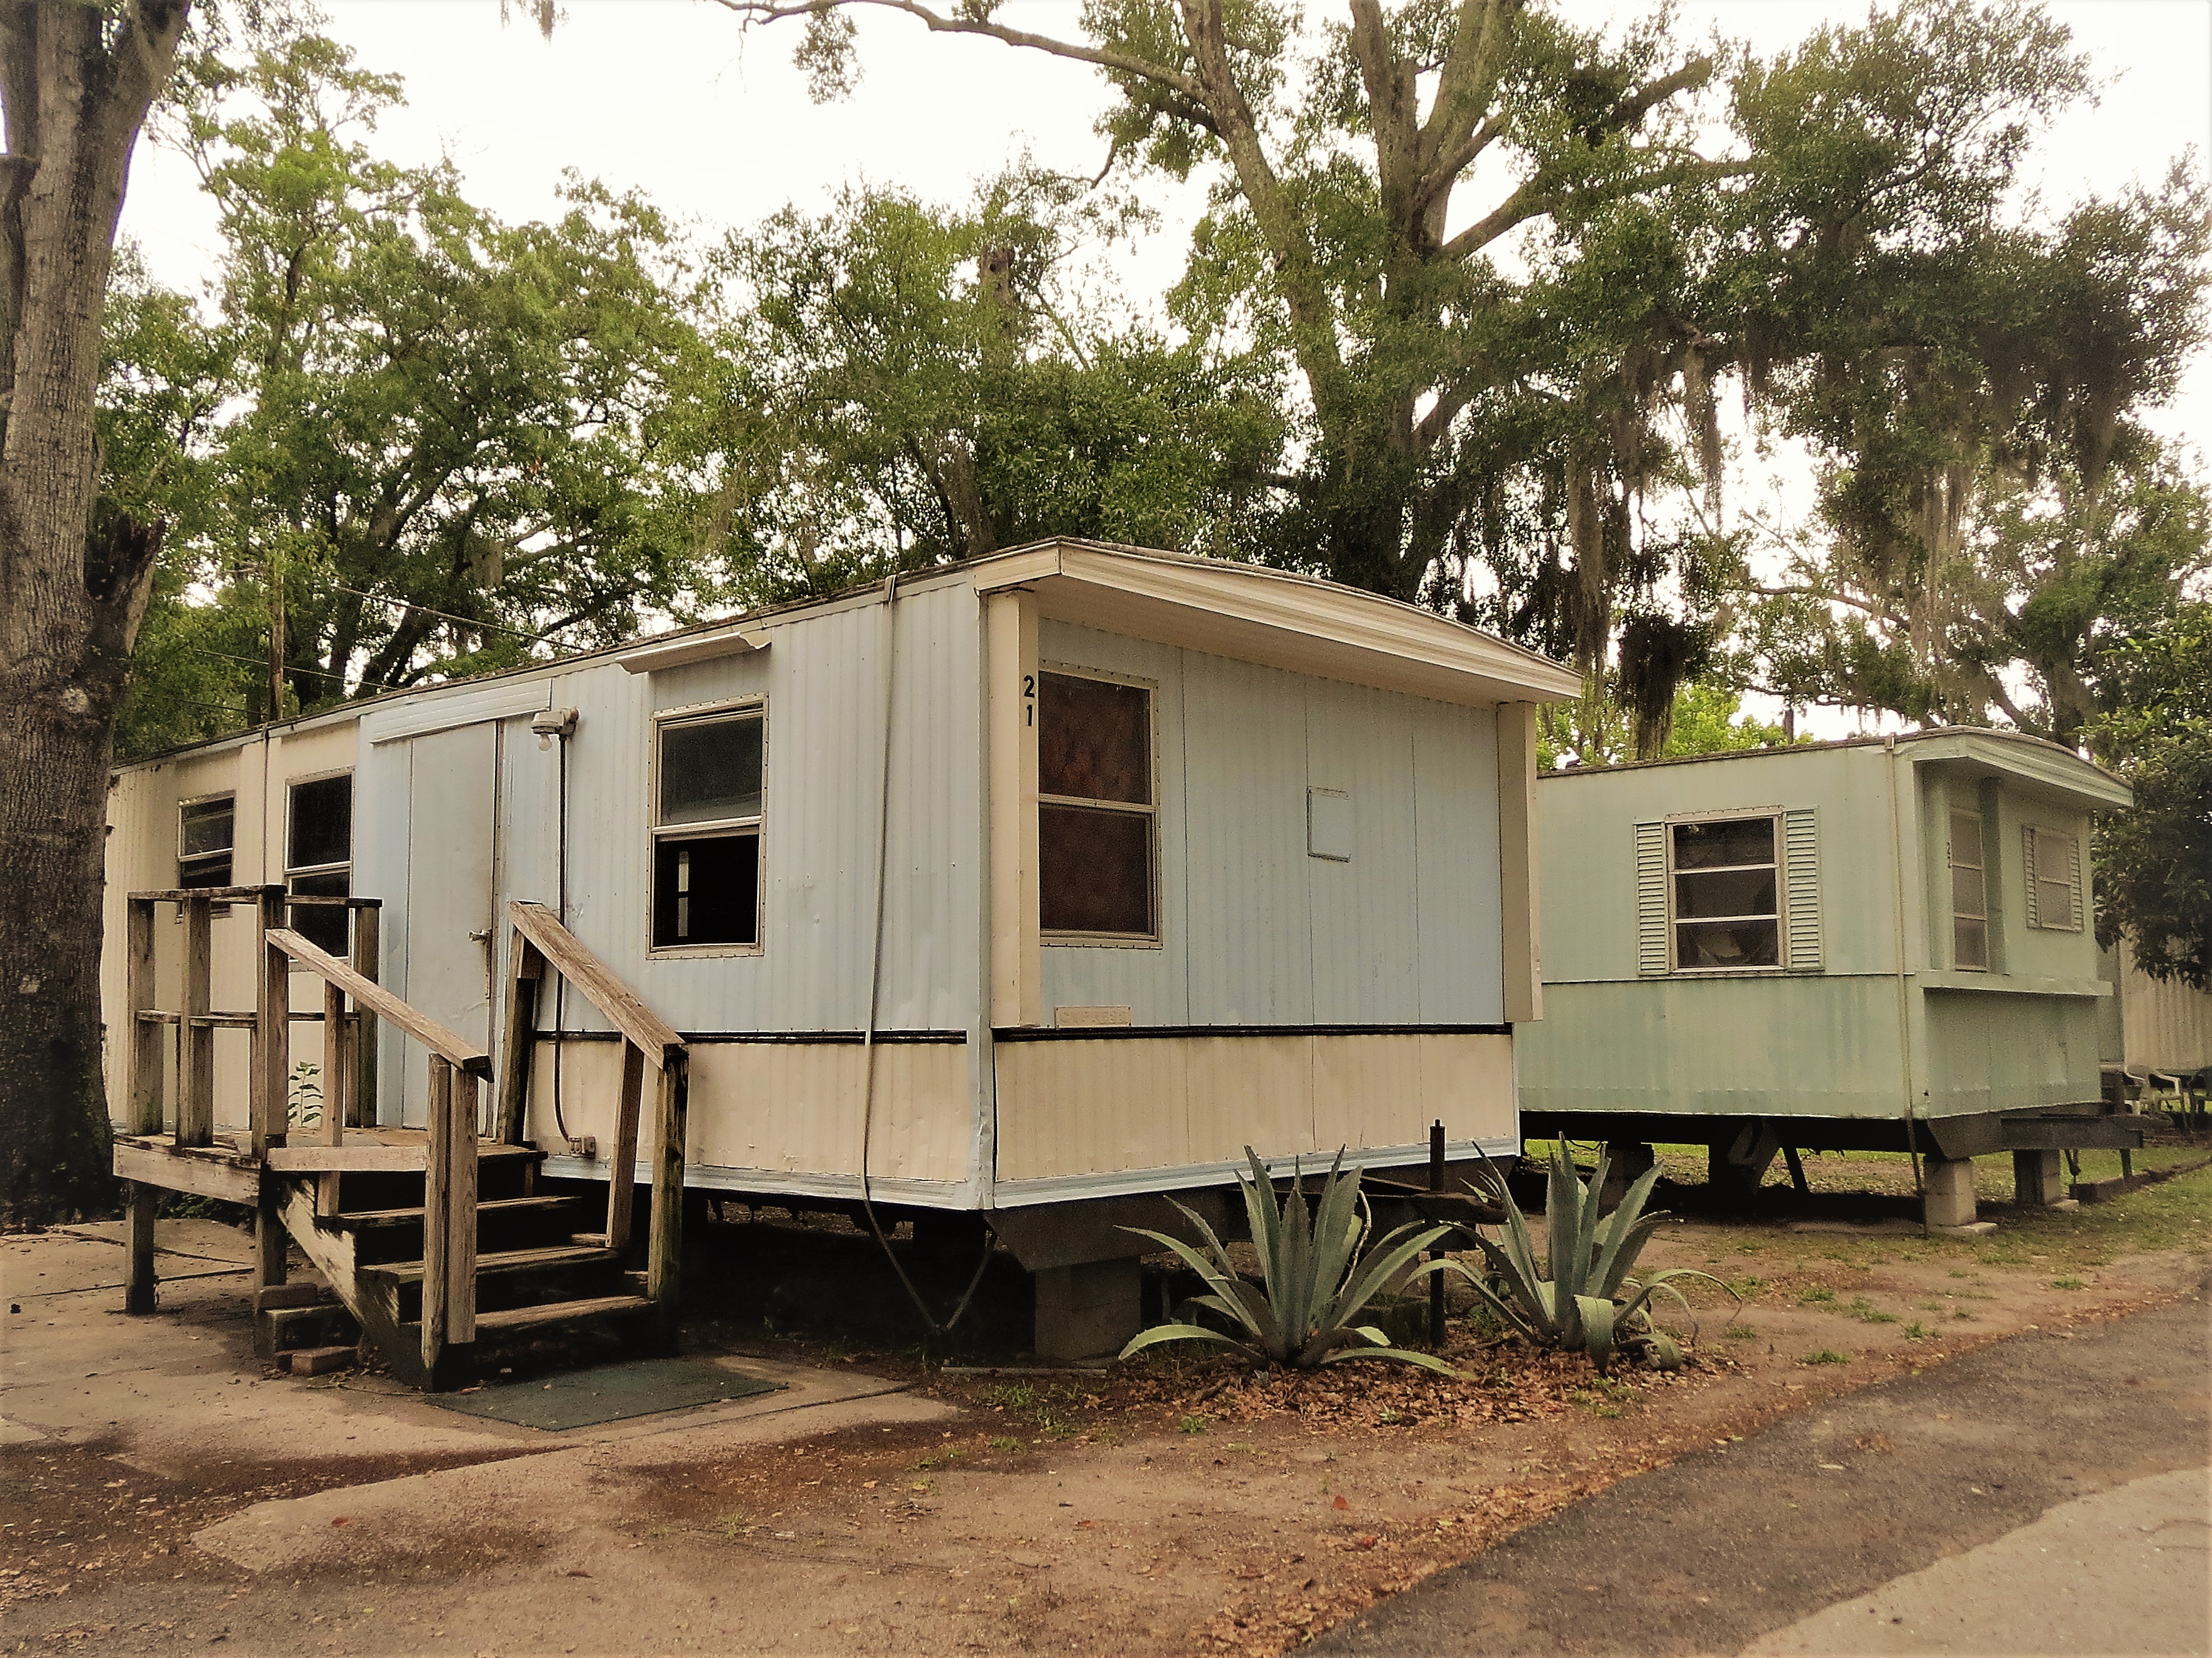 Ideal Trailer Park | jaxpsychogeo on miami mobile homes, river birch mobile homes, twin lakes mobile homes, 2014 model mobile homes, interior double wide mobile homes,